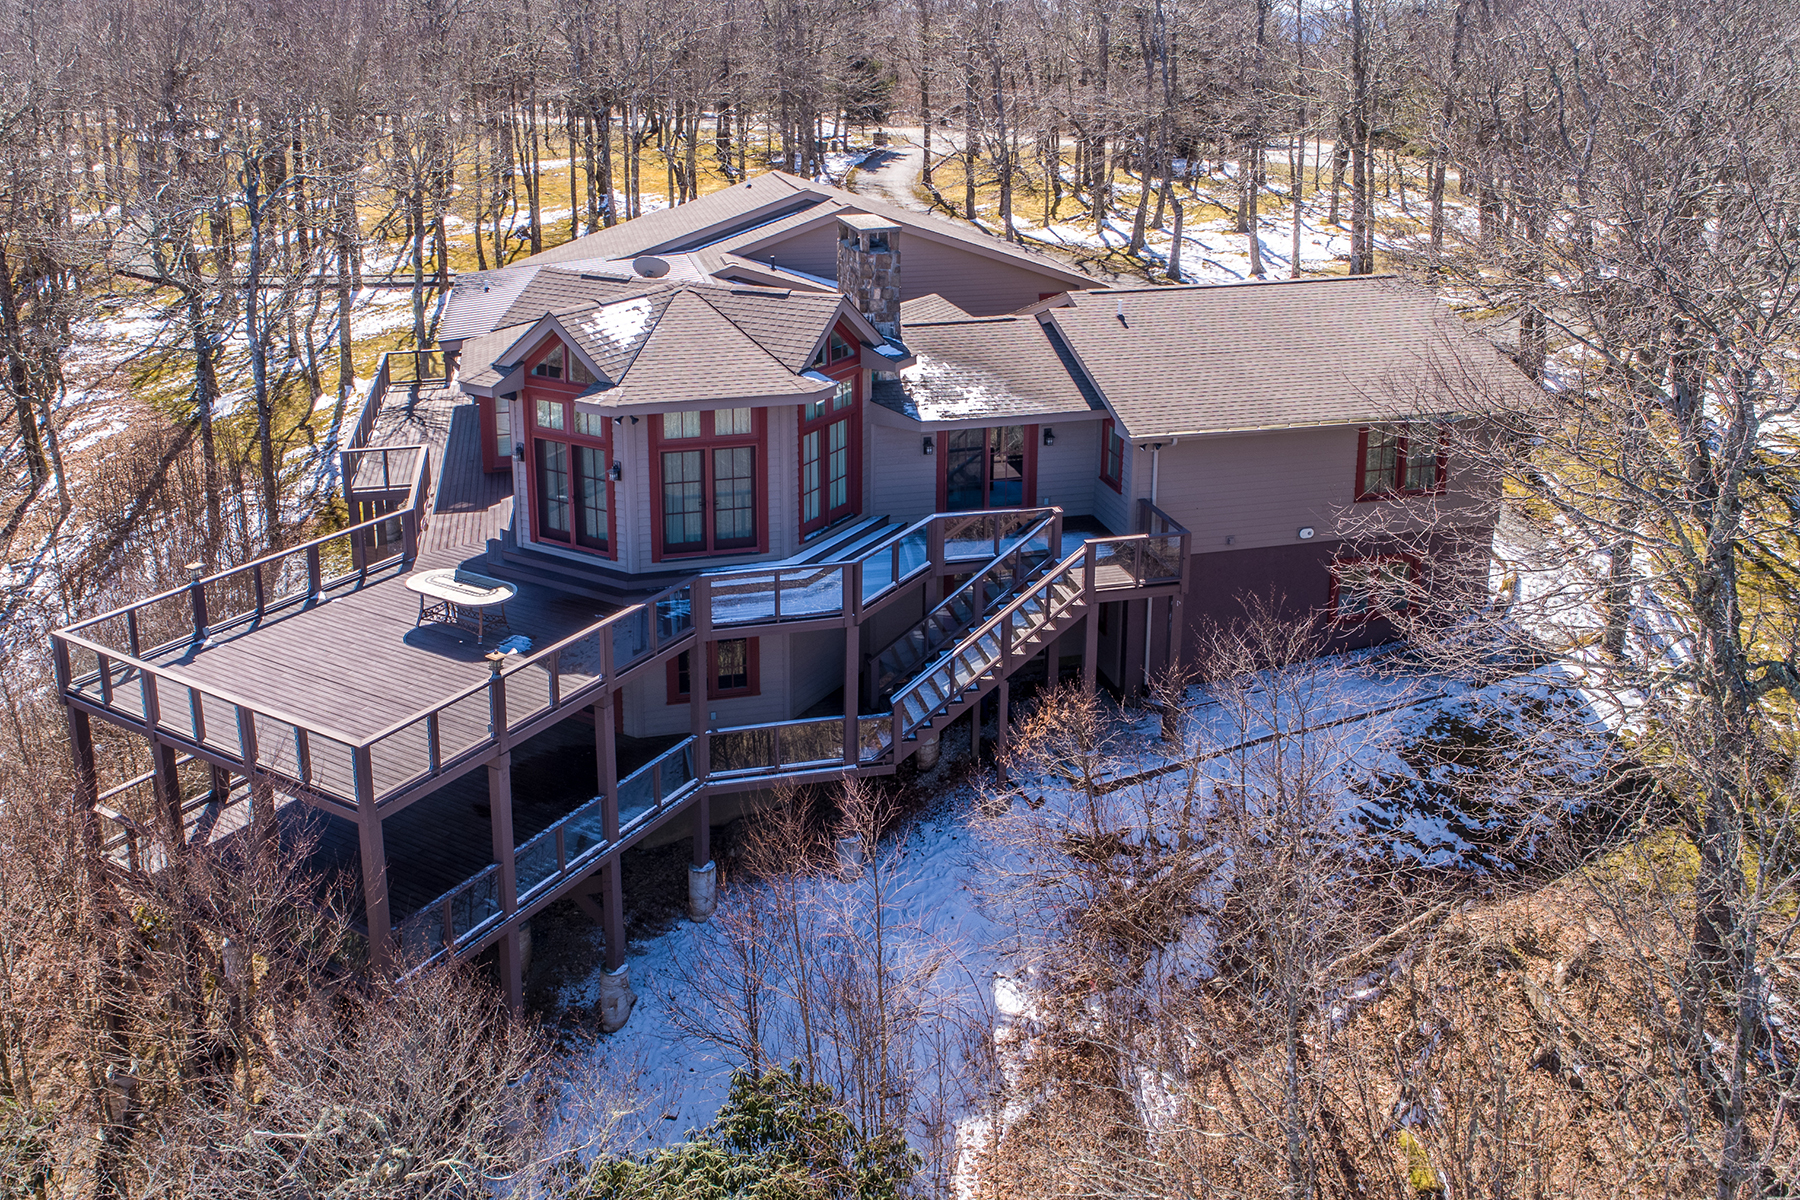 Single Family Homes for Active at BEECH MOUNTAIN - EMERALD MOUNTAIN 201 Oz Rd Beech Mountain, North Carolina 28604 United States